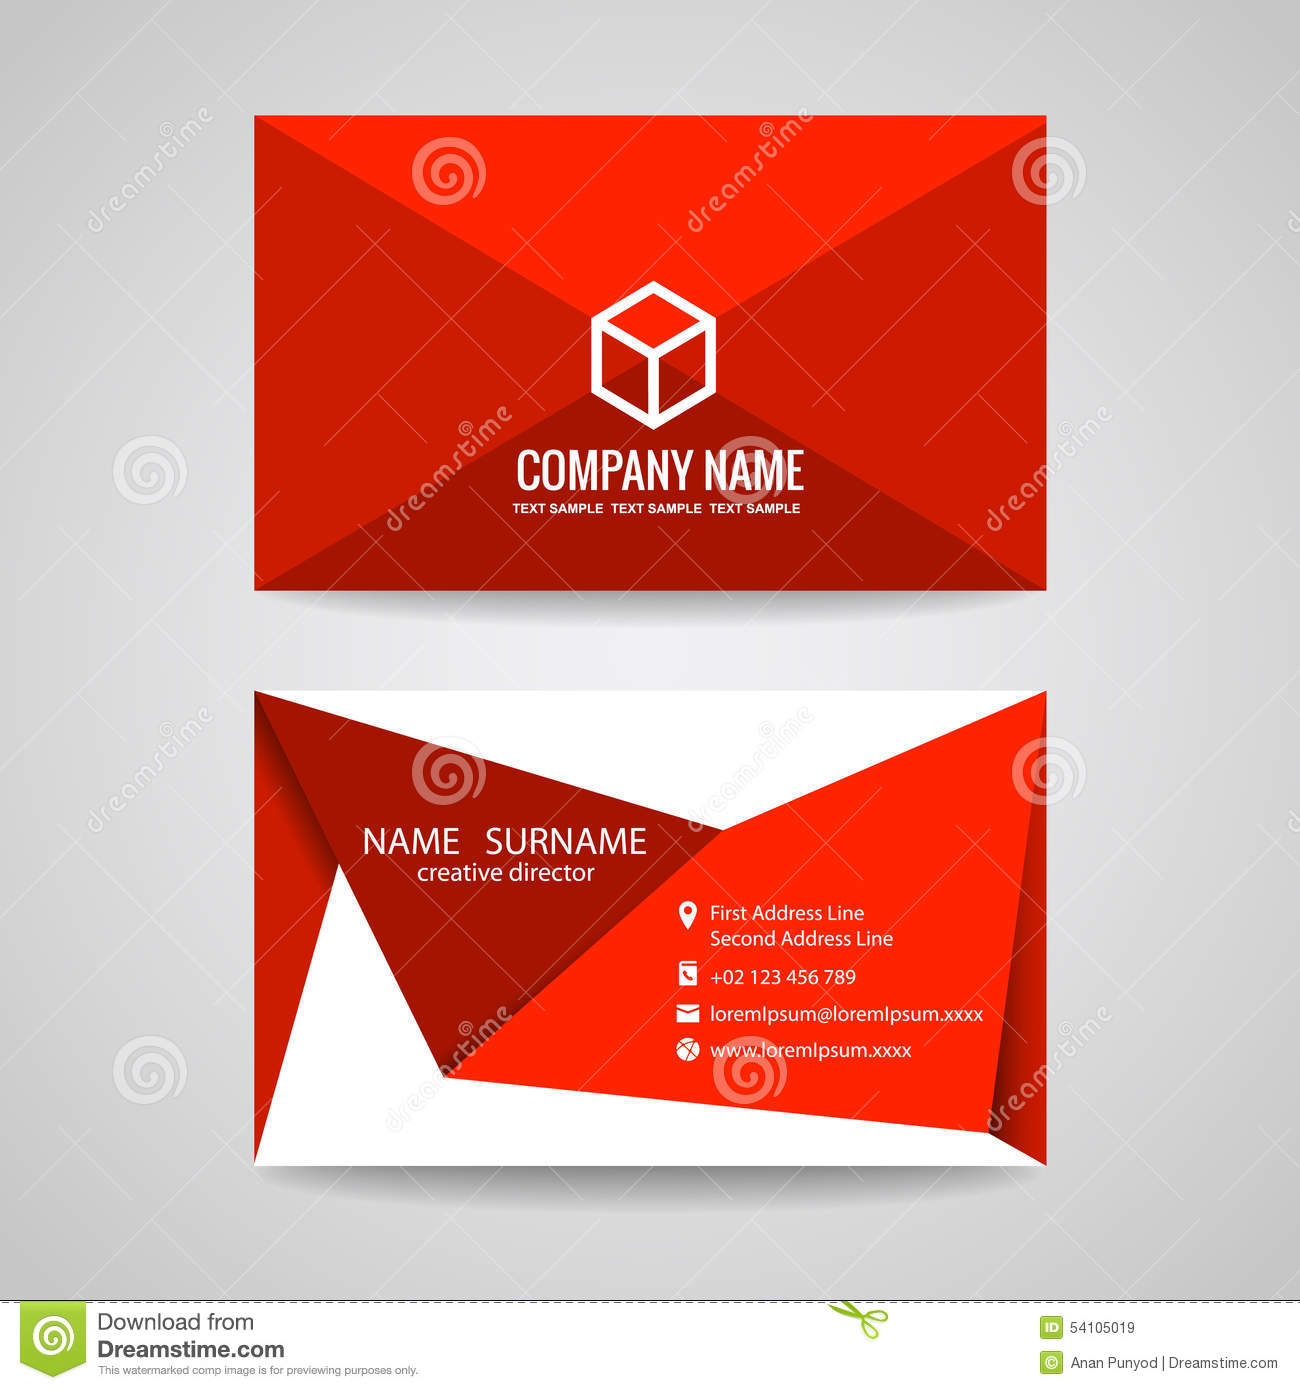 Business card vector graphic design red triangle fold and box logo business card vector graphic design red triangle fold and box logo reheart